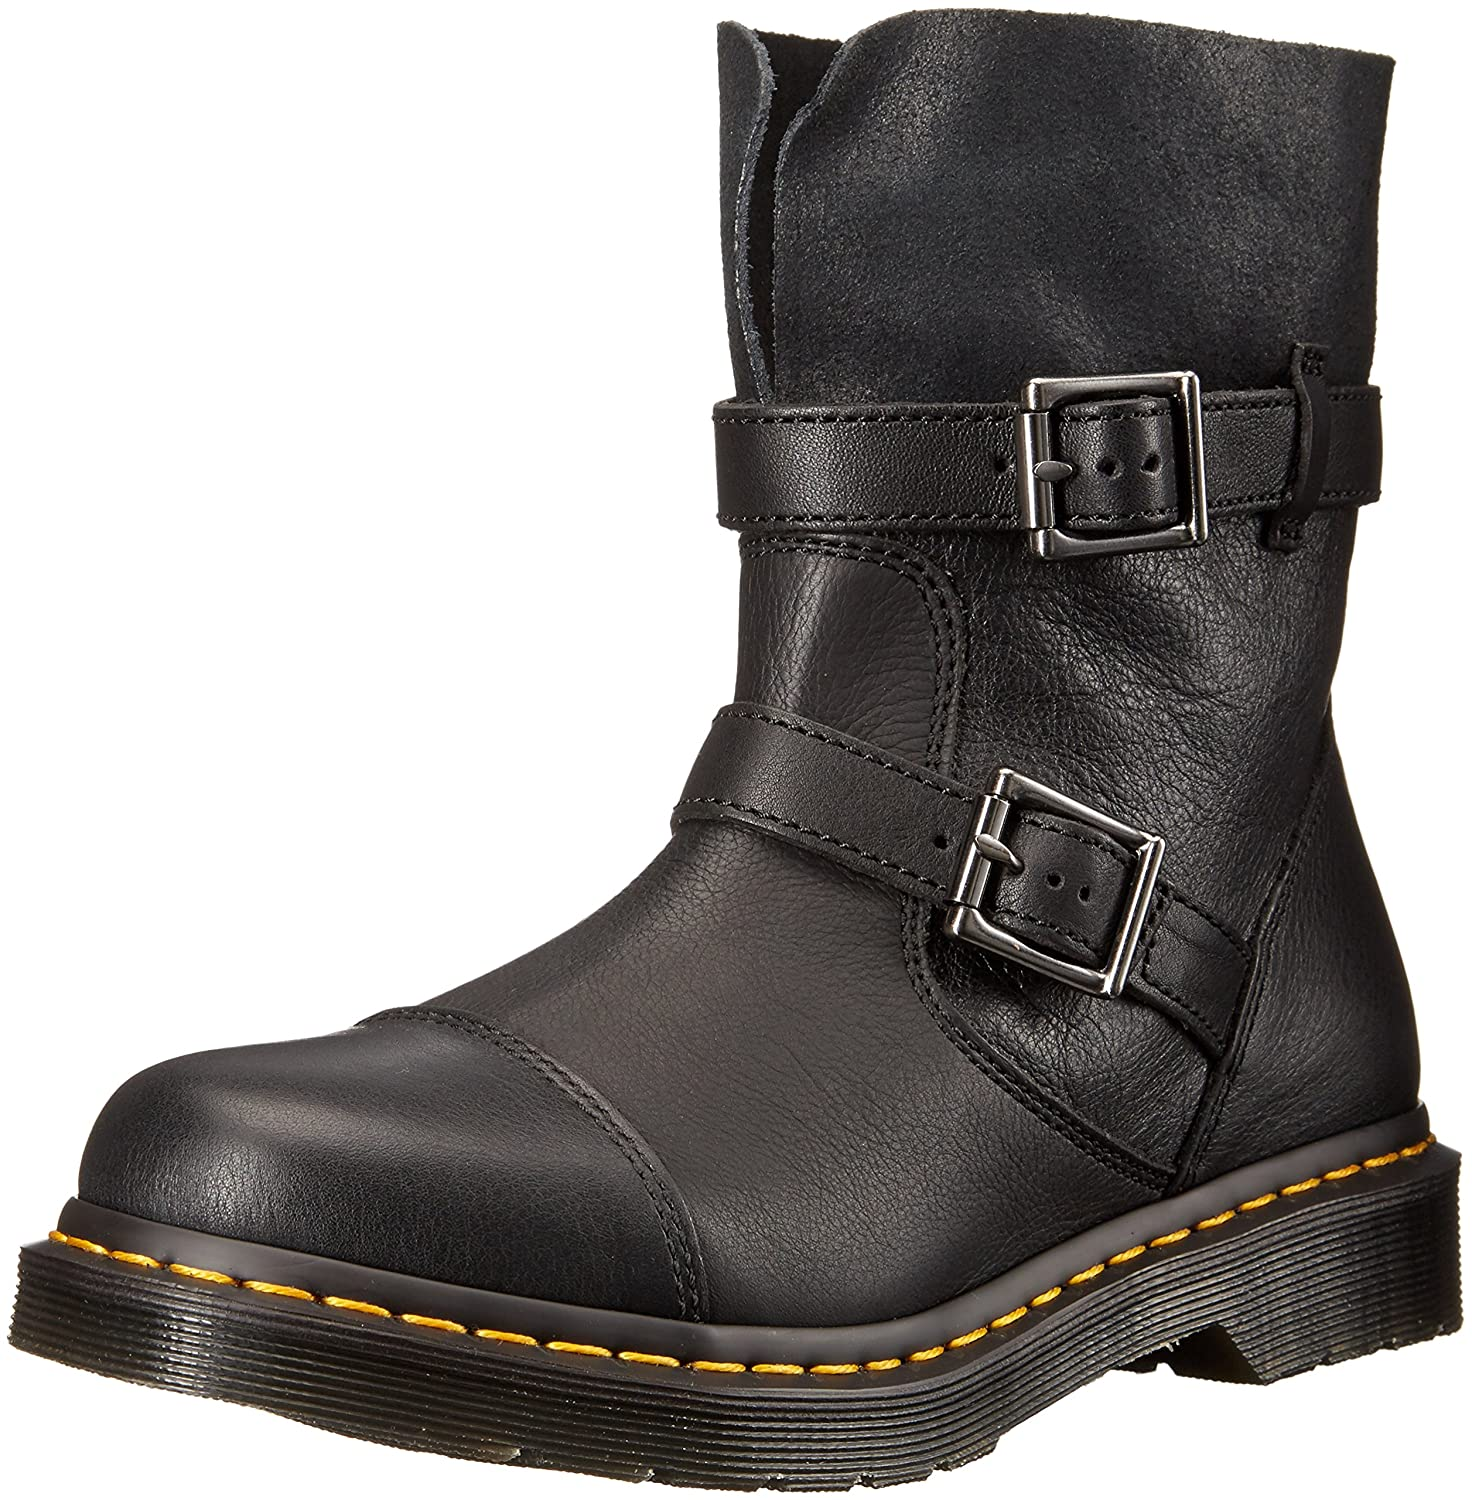 Dr. Martens Women's Leather Kristy in Black Virginia Leather Women's Fashion Boot B012Q285BK 7 Medium UK (9 US)|Black Virginia Leather ab1ba9